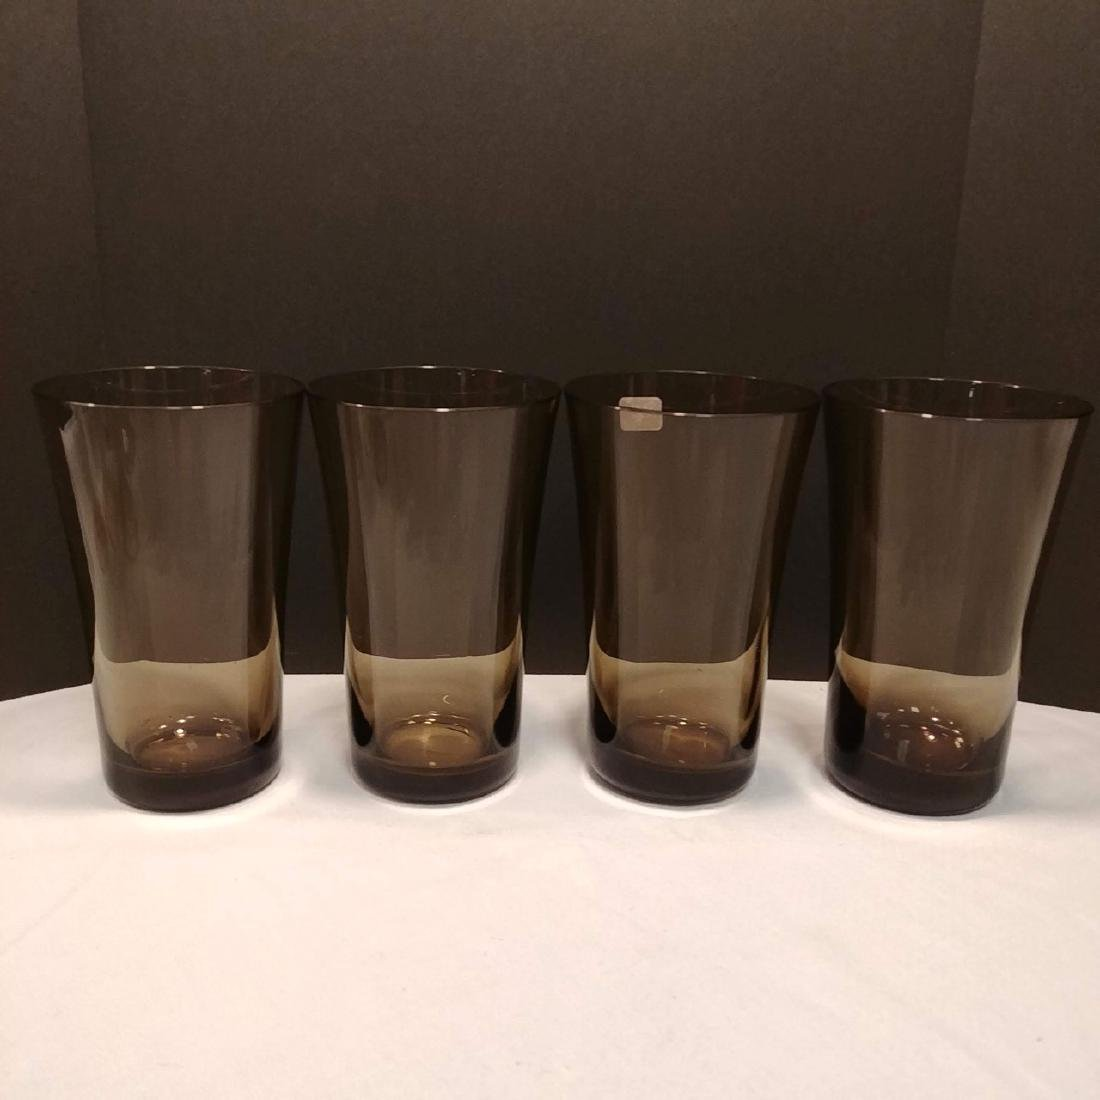 Villeroy & Boch Beverage Glasses (4)